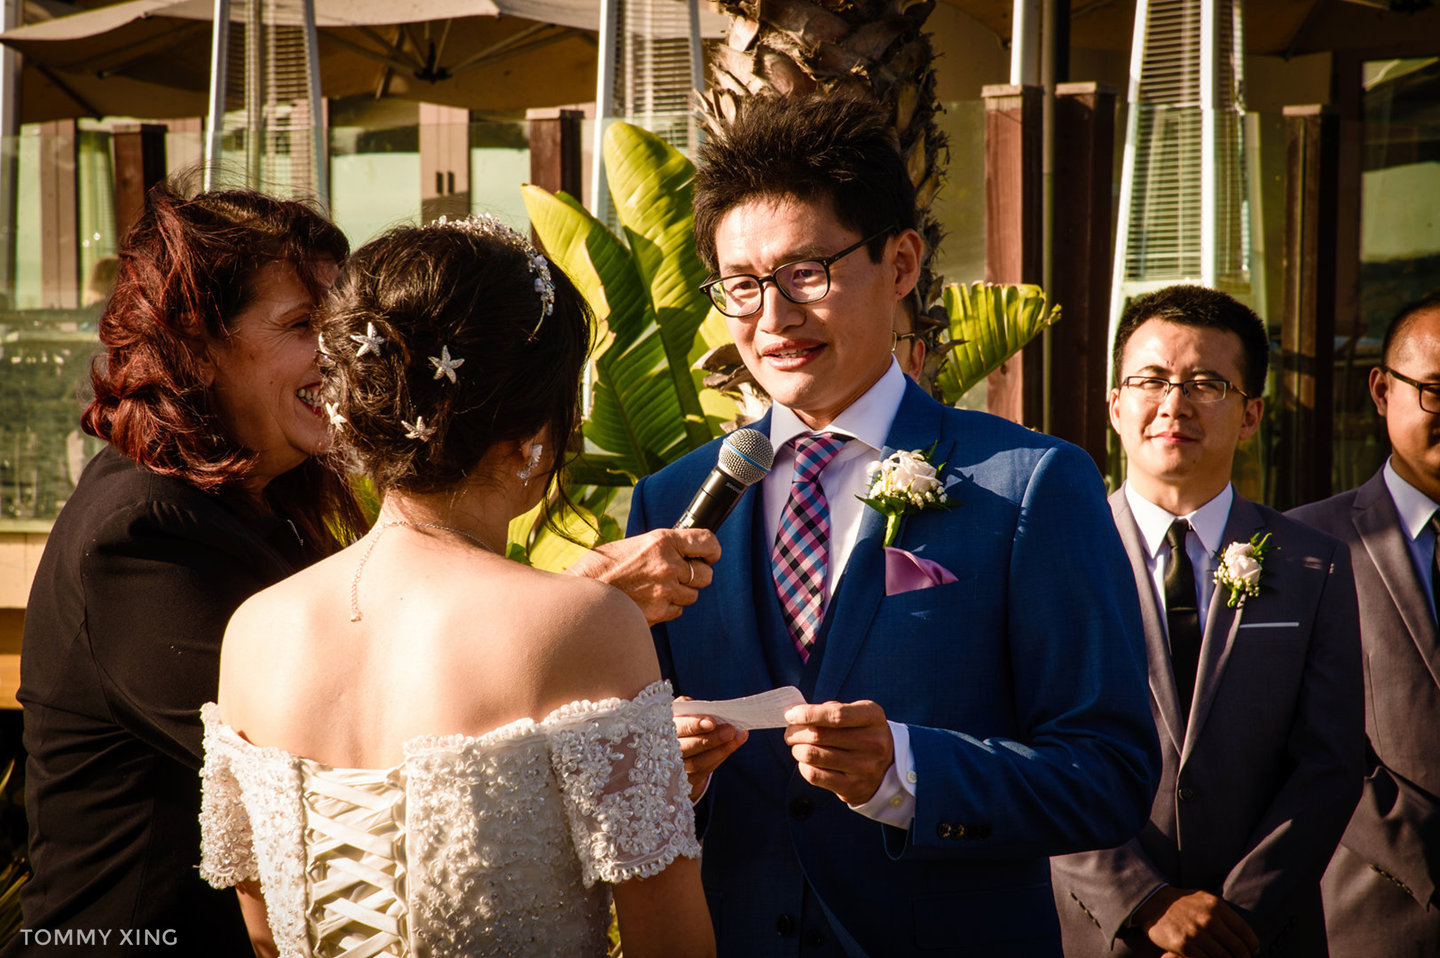 Paradise Point Resort Wedding Xiaolu & Bin San Diego 圣地亚哥婚礼摄影跟拍 Tommy Xing Photography 洛杉矶婚礼婚纱照摄影师 136.jpg